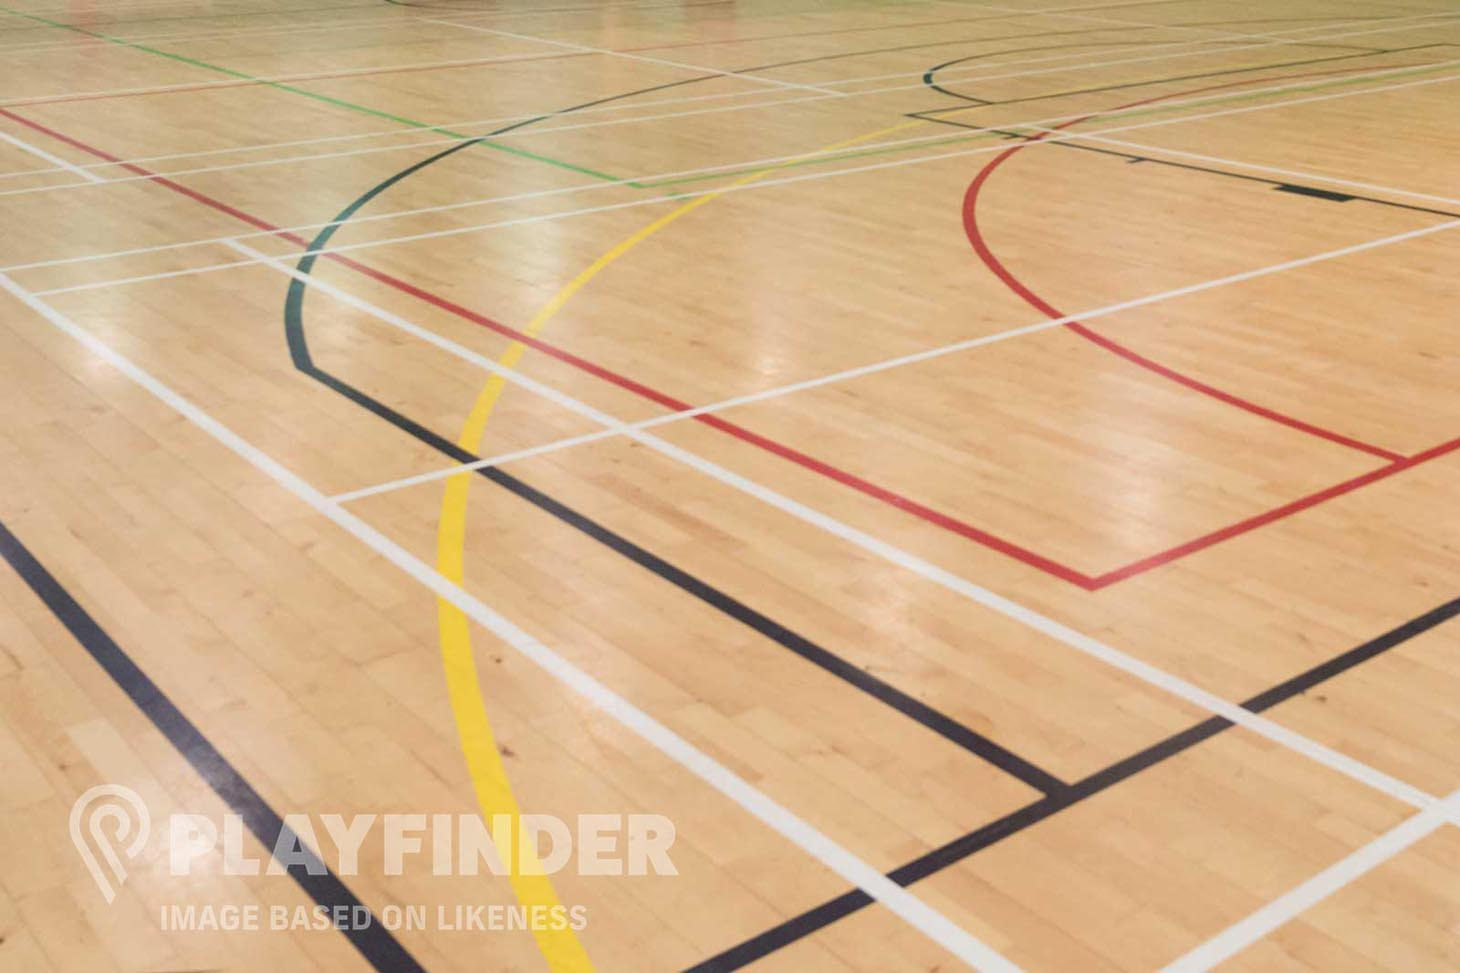 Kensington Aldridge Academy Court | Sports hall volleyball court